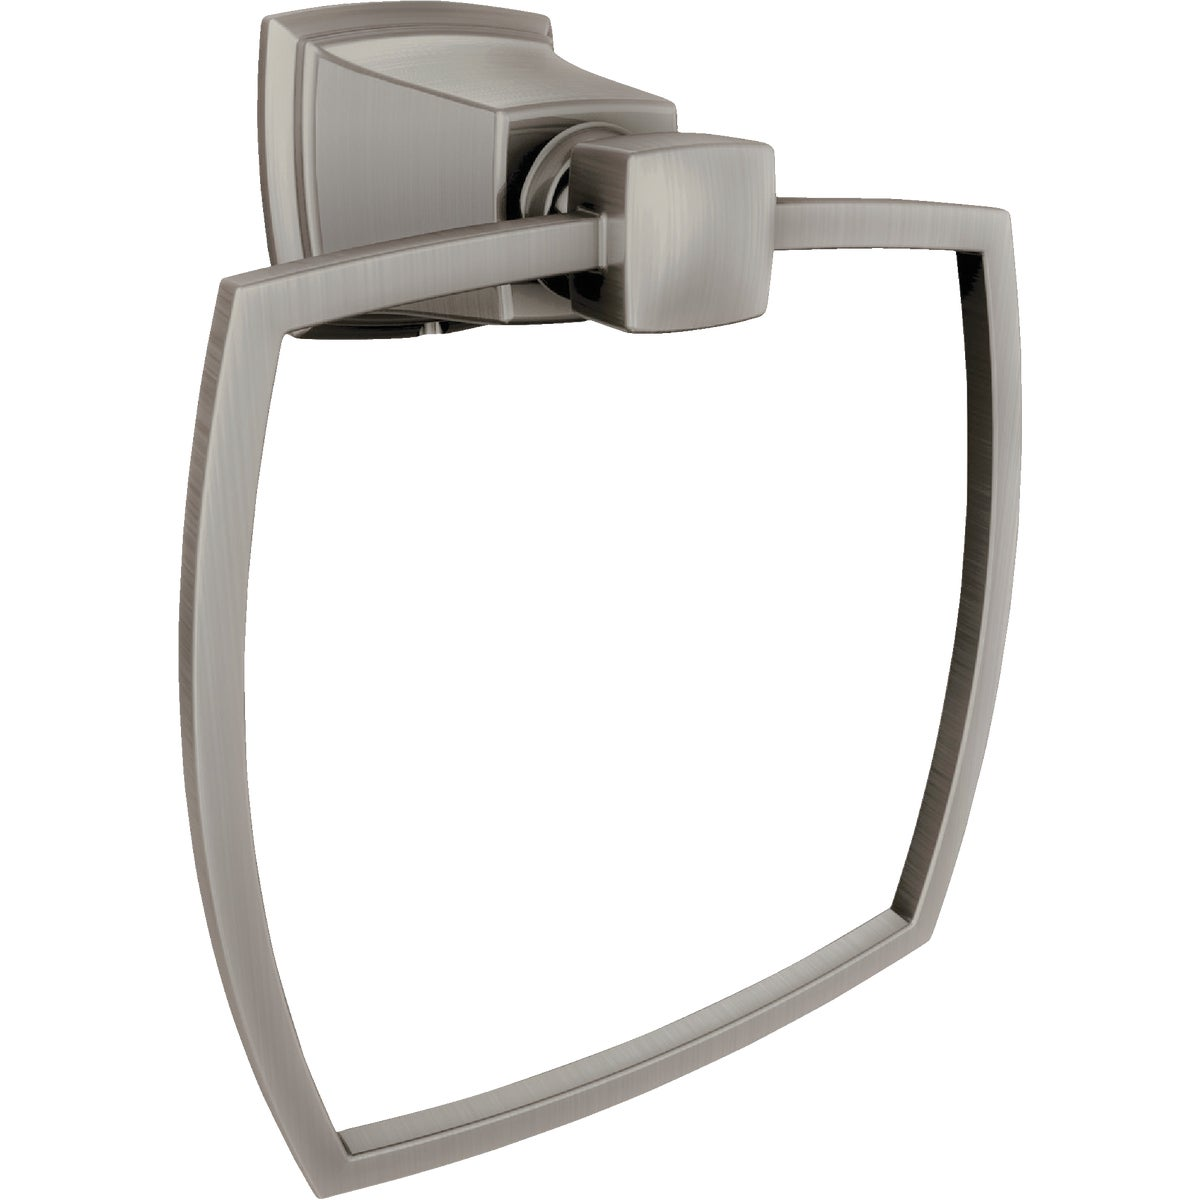 BN TOWEL RING - Y3286BN by C S I Donner